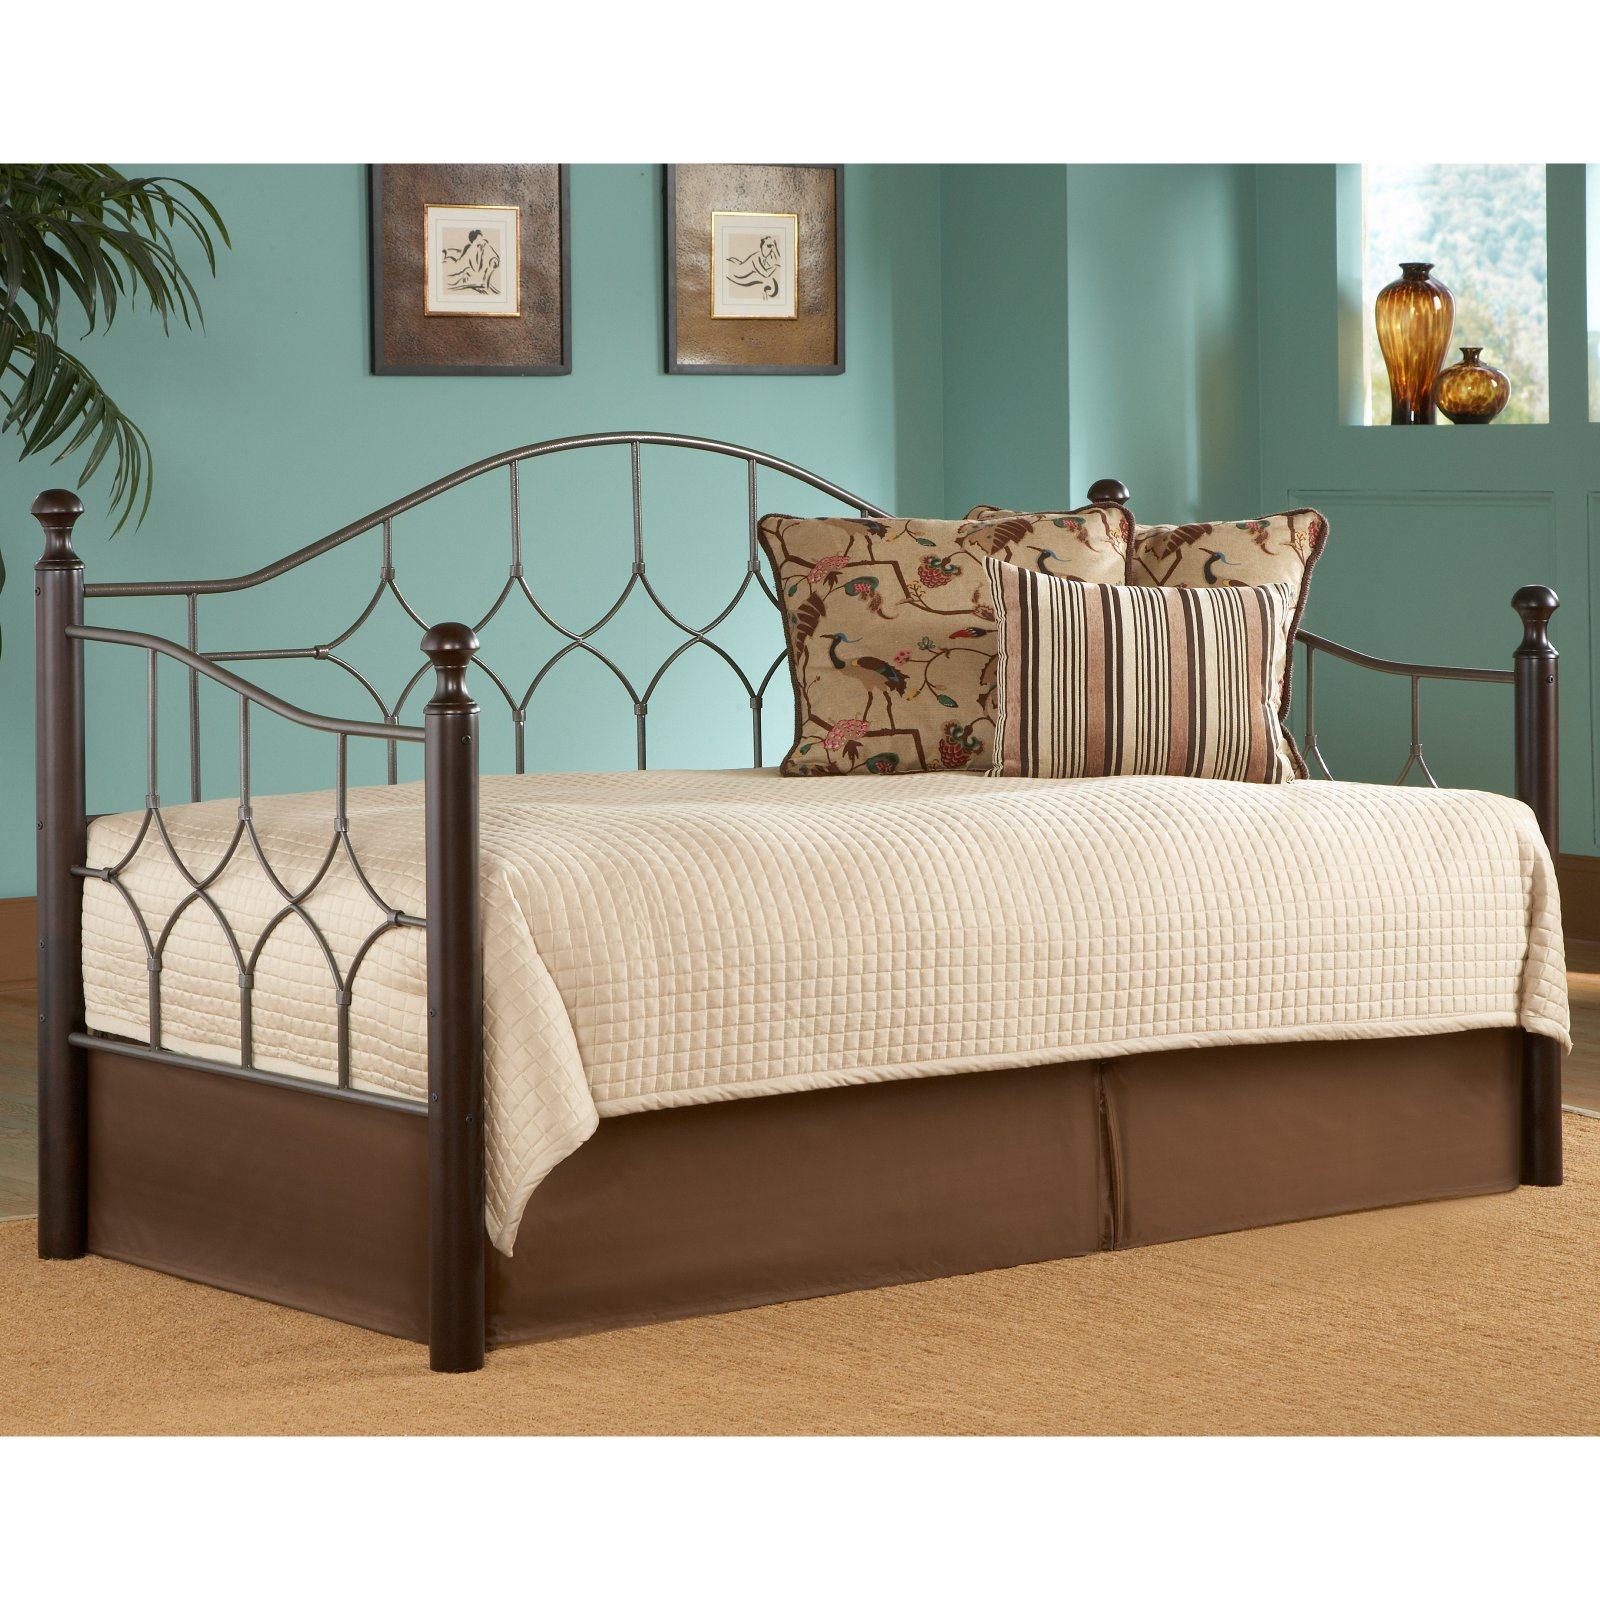 Bianca Complete Metal Day Bed with Euro Top Deck and Trundle Bed Pop-Up Frame, Hammered Pewter Finish, Twin by Fashion Bed Group